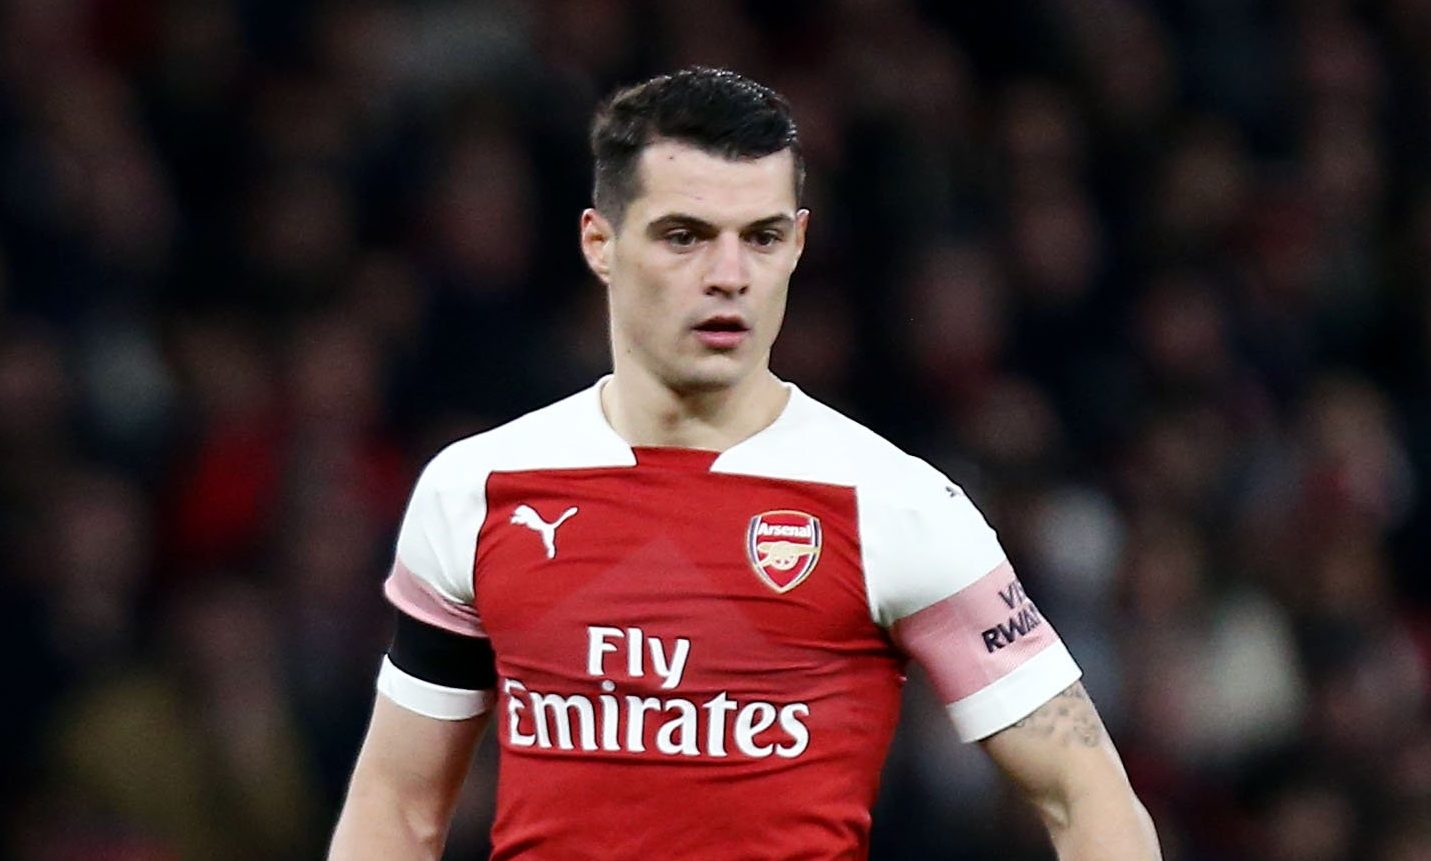 Granit Xhaka clashes with Arsenal fan after Manchester United defeat